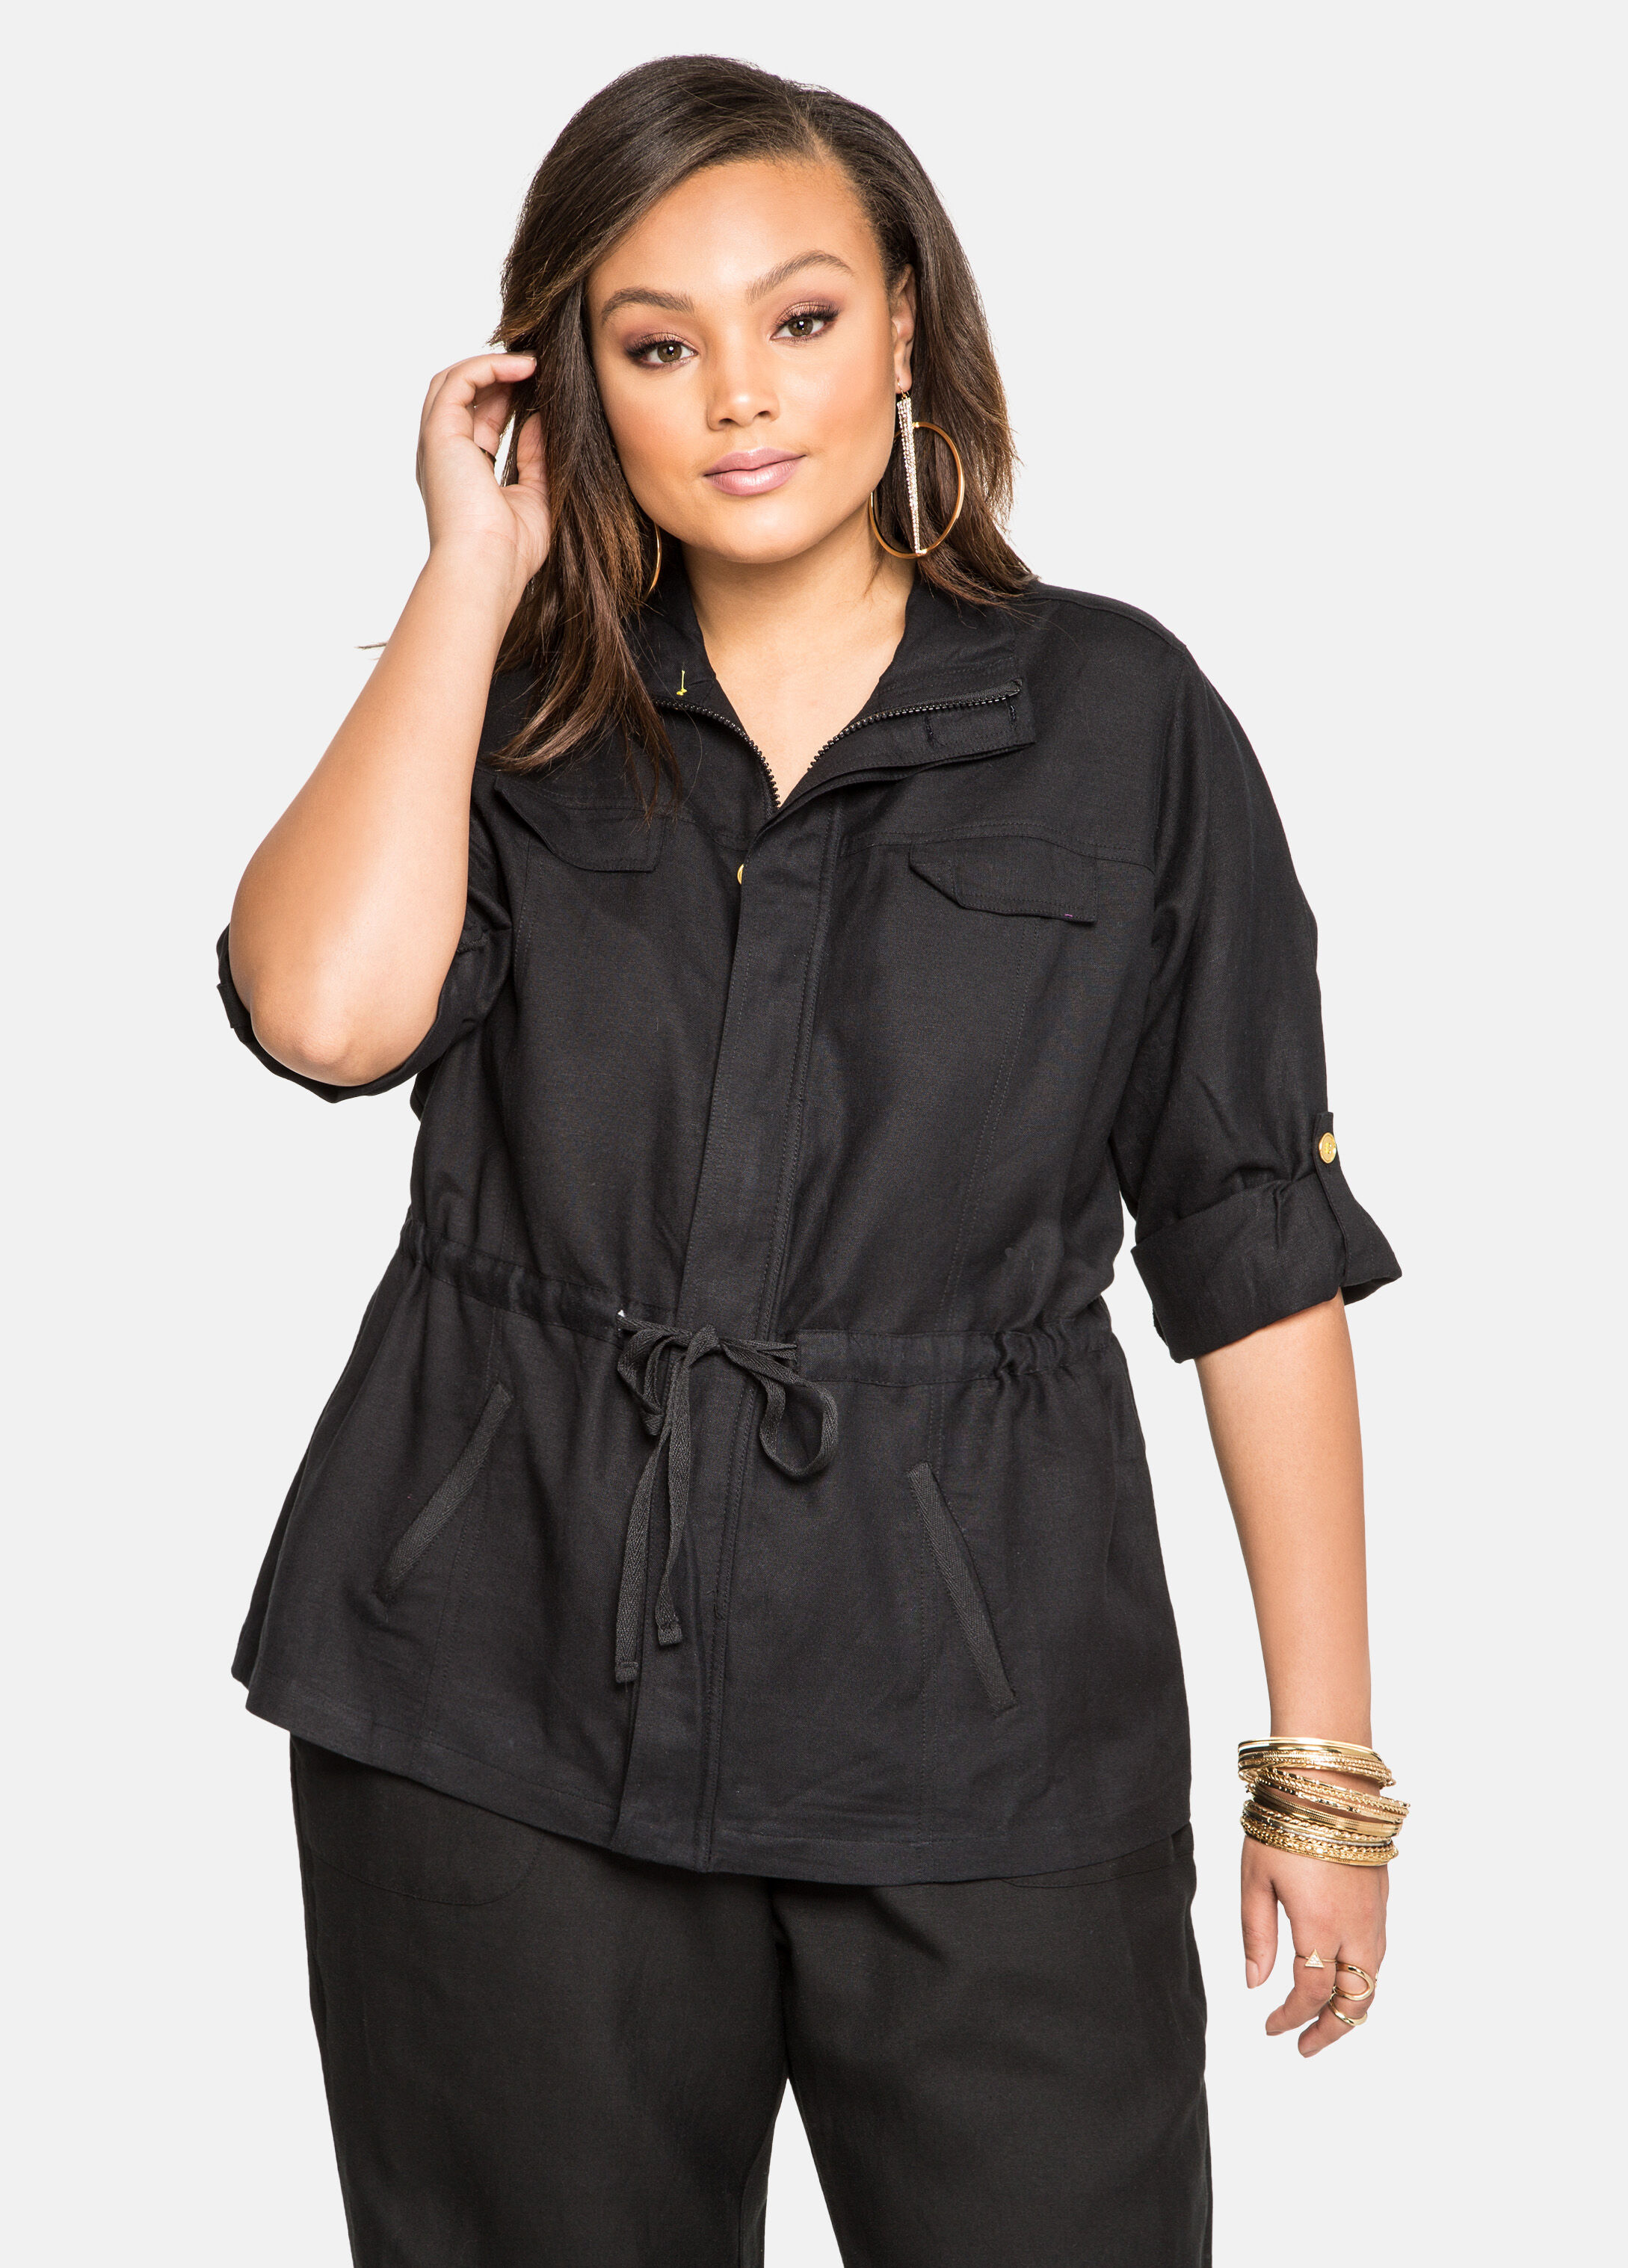 Drawstring Waist Linen Jacket Black - Clearance